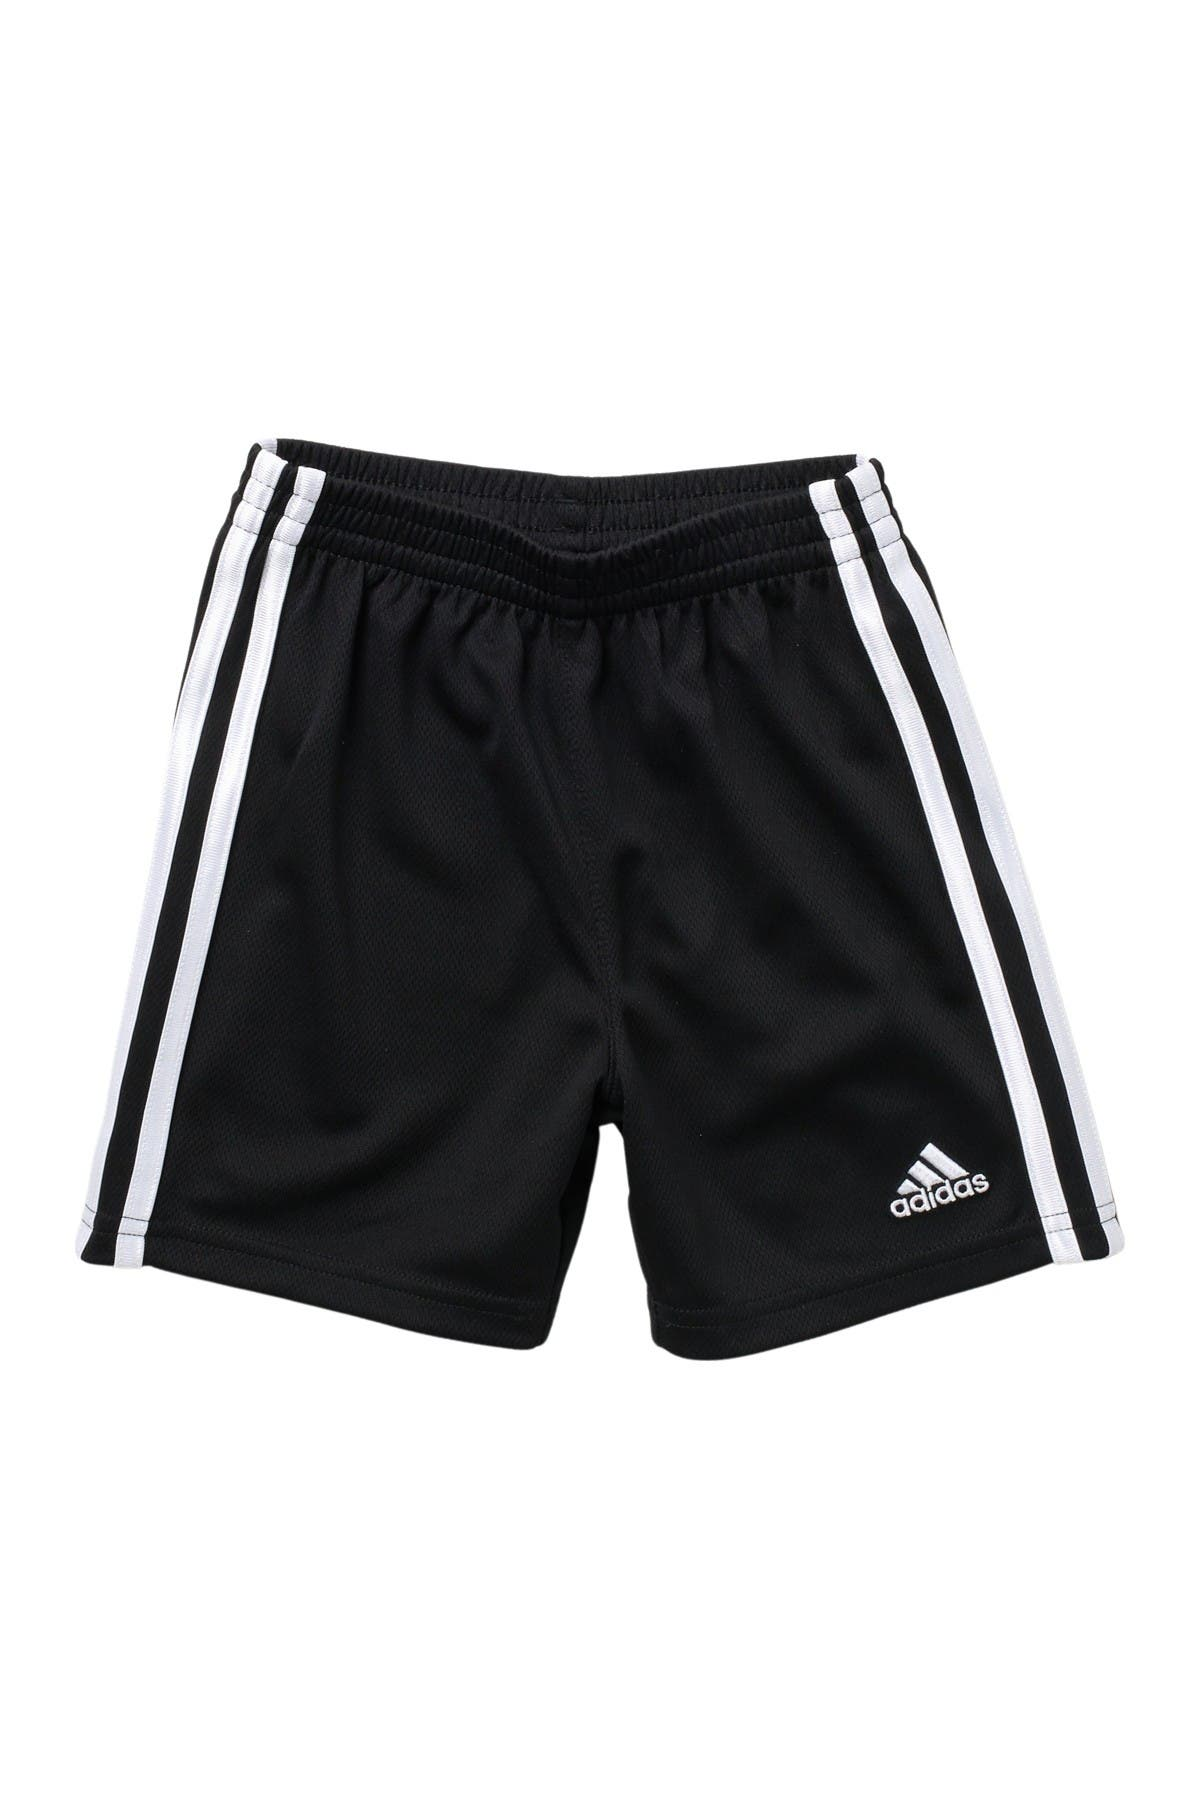 Image of adidas 3 Stripe Mesh Shorts